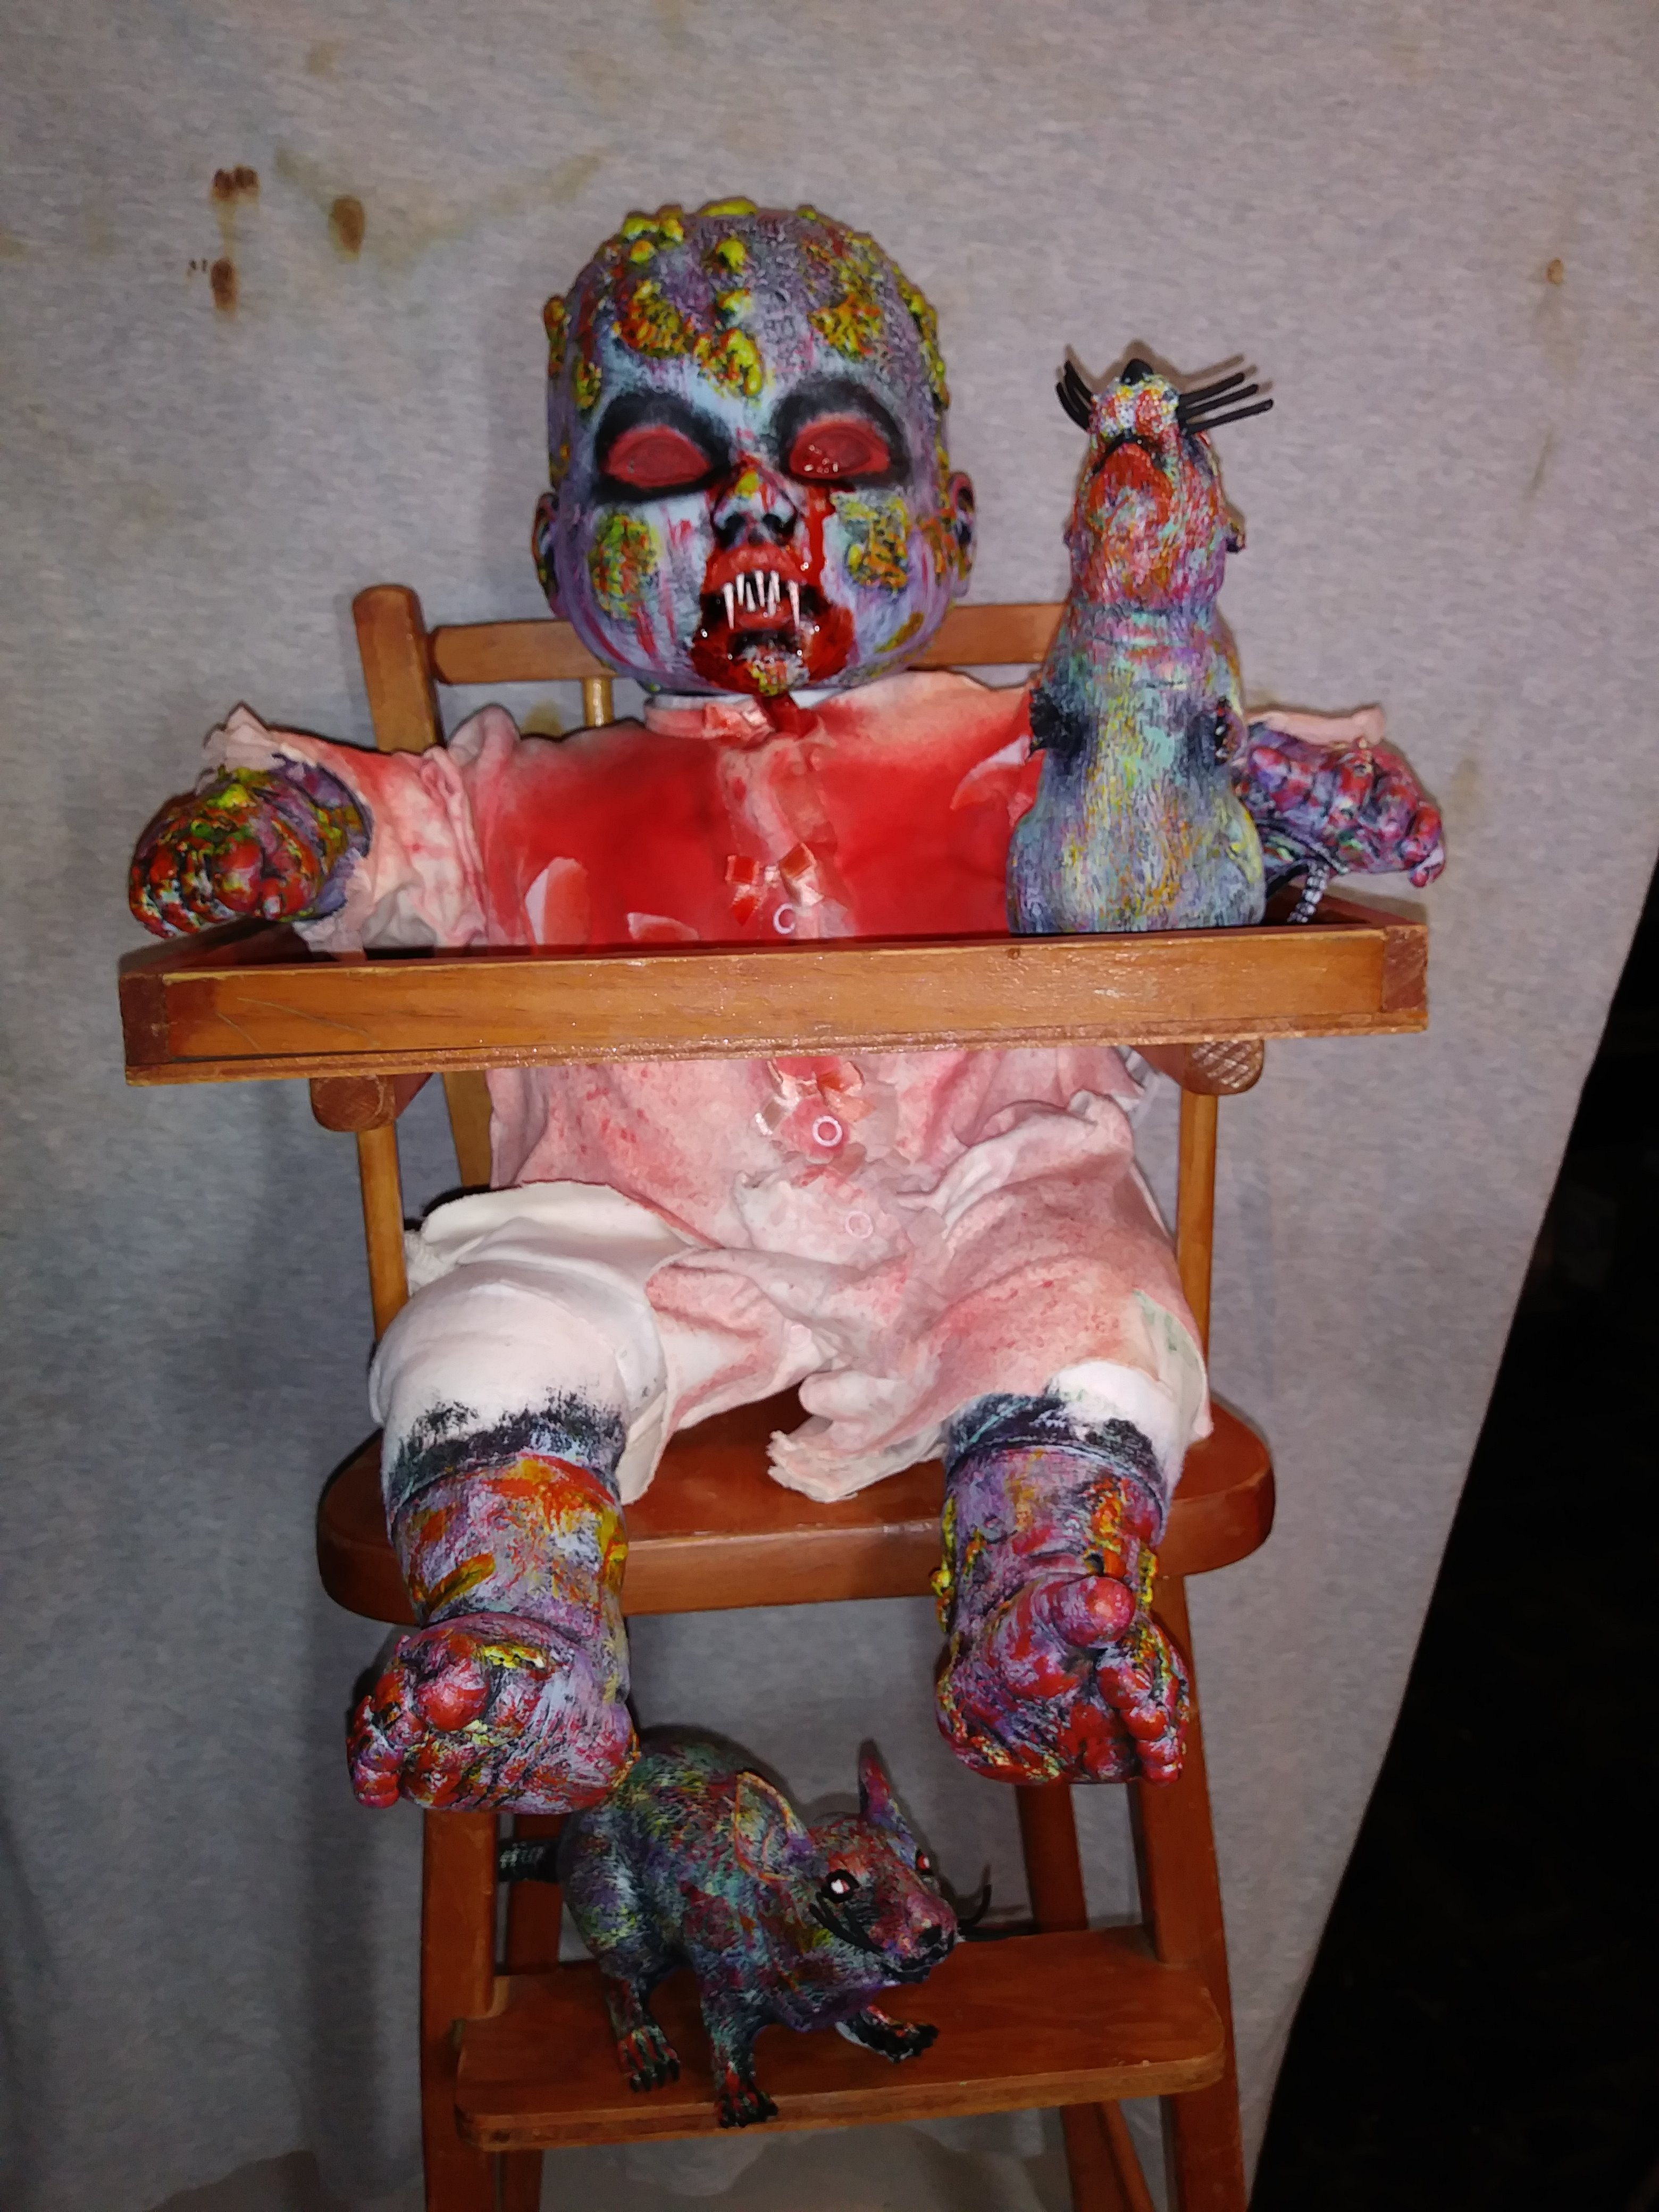 Picture of Creepy Zombie Doll